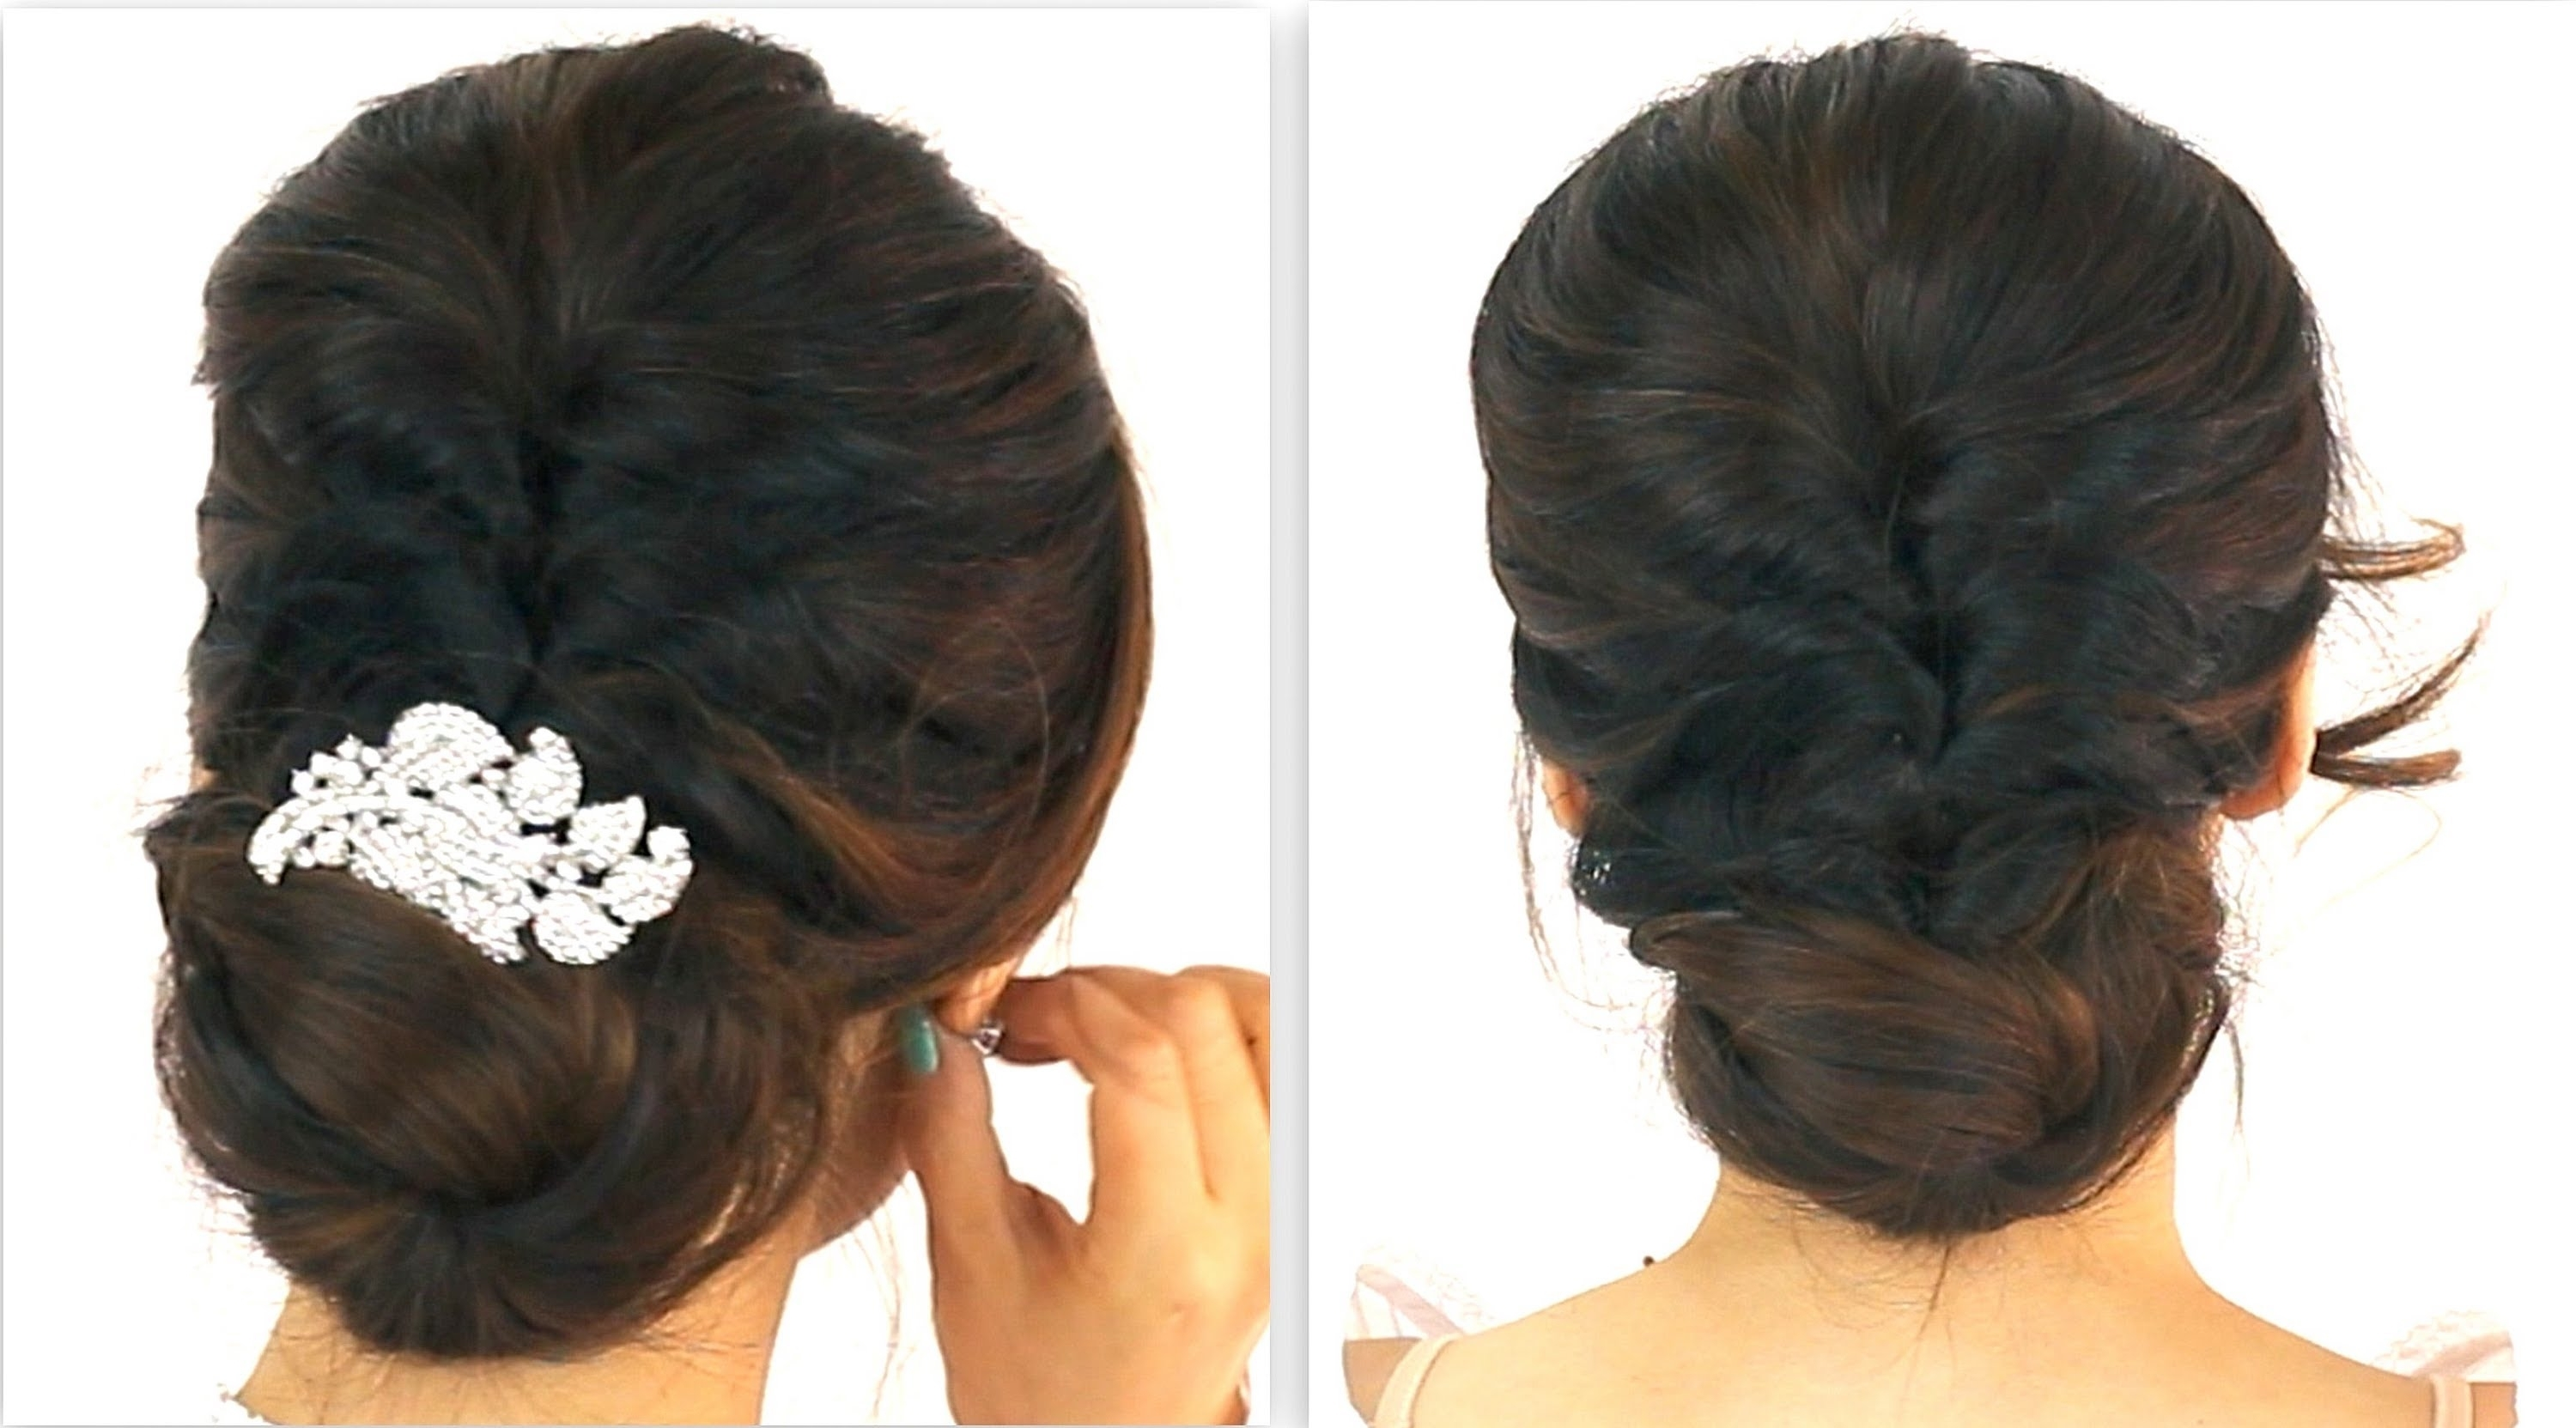 Up Hairstyles For Long Hair Updo Wedding Unbelievable In A Bun Easy Throughout Simple Hair Updo Hairstyles (Gallery 15 of 15)